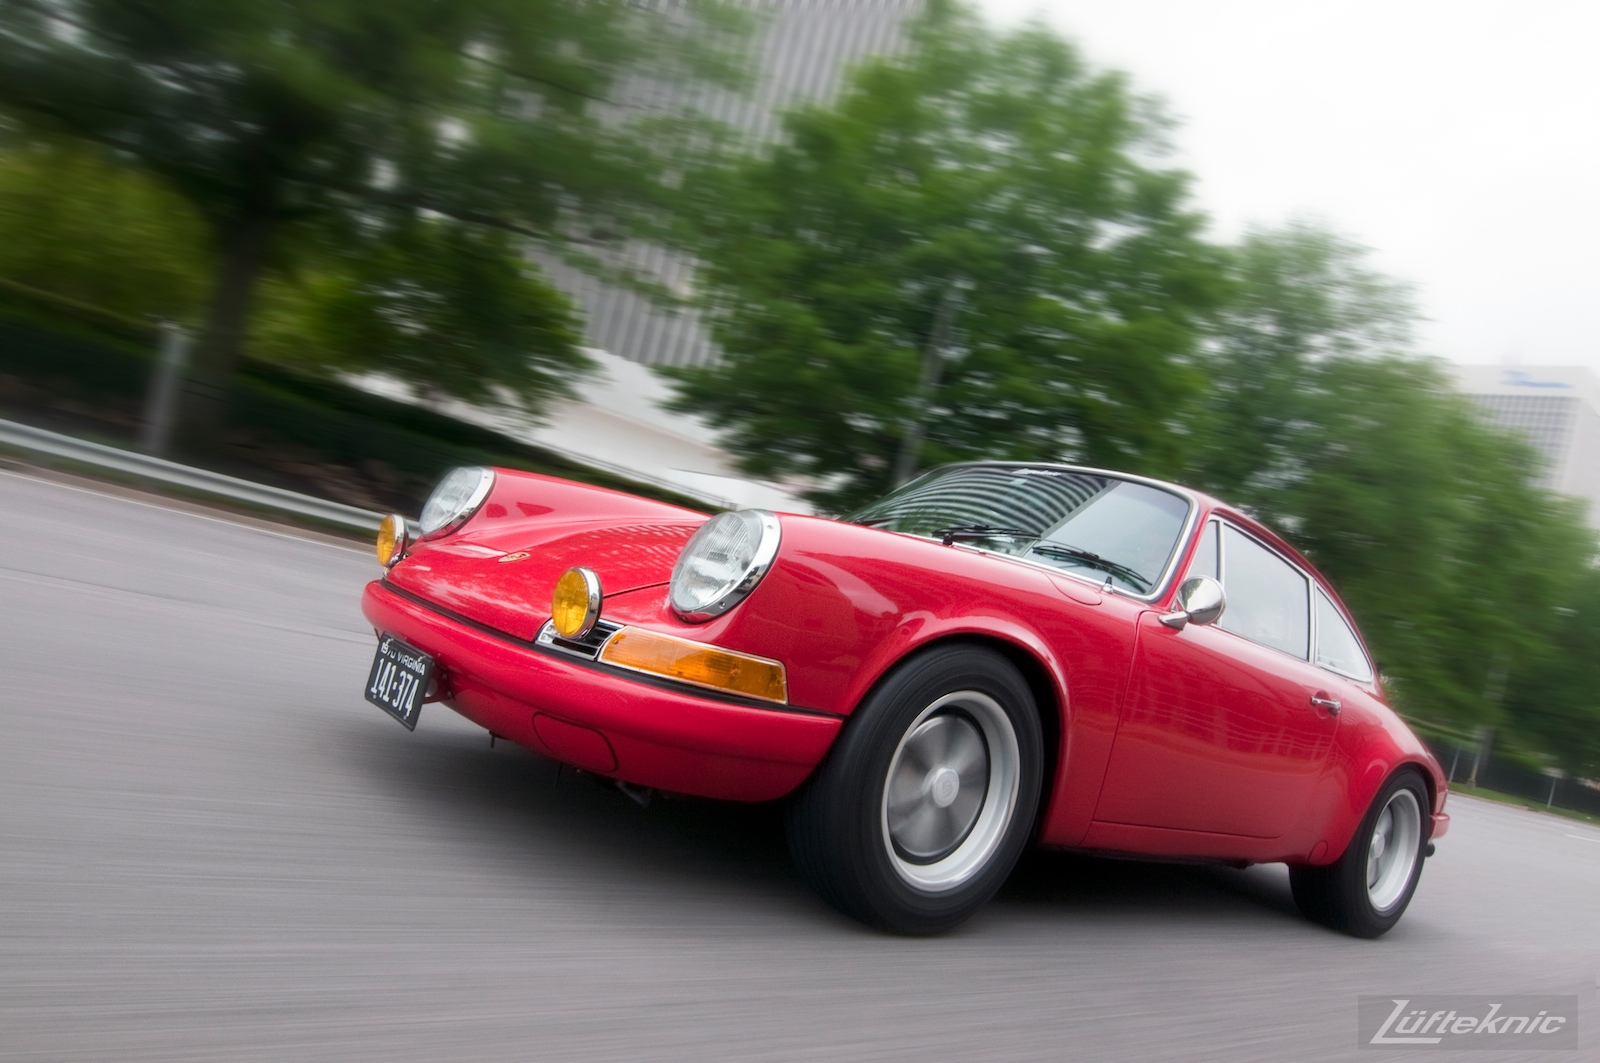 A pacing shot of a red 911E with trees and a blurred background.